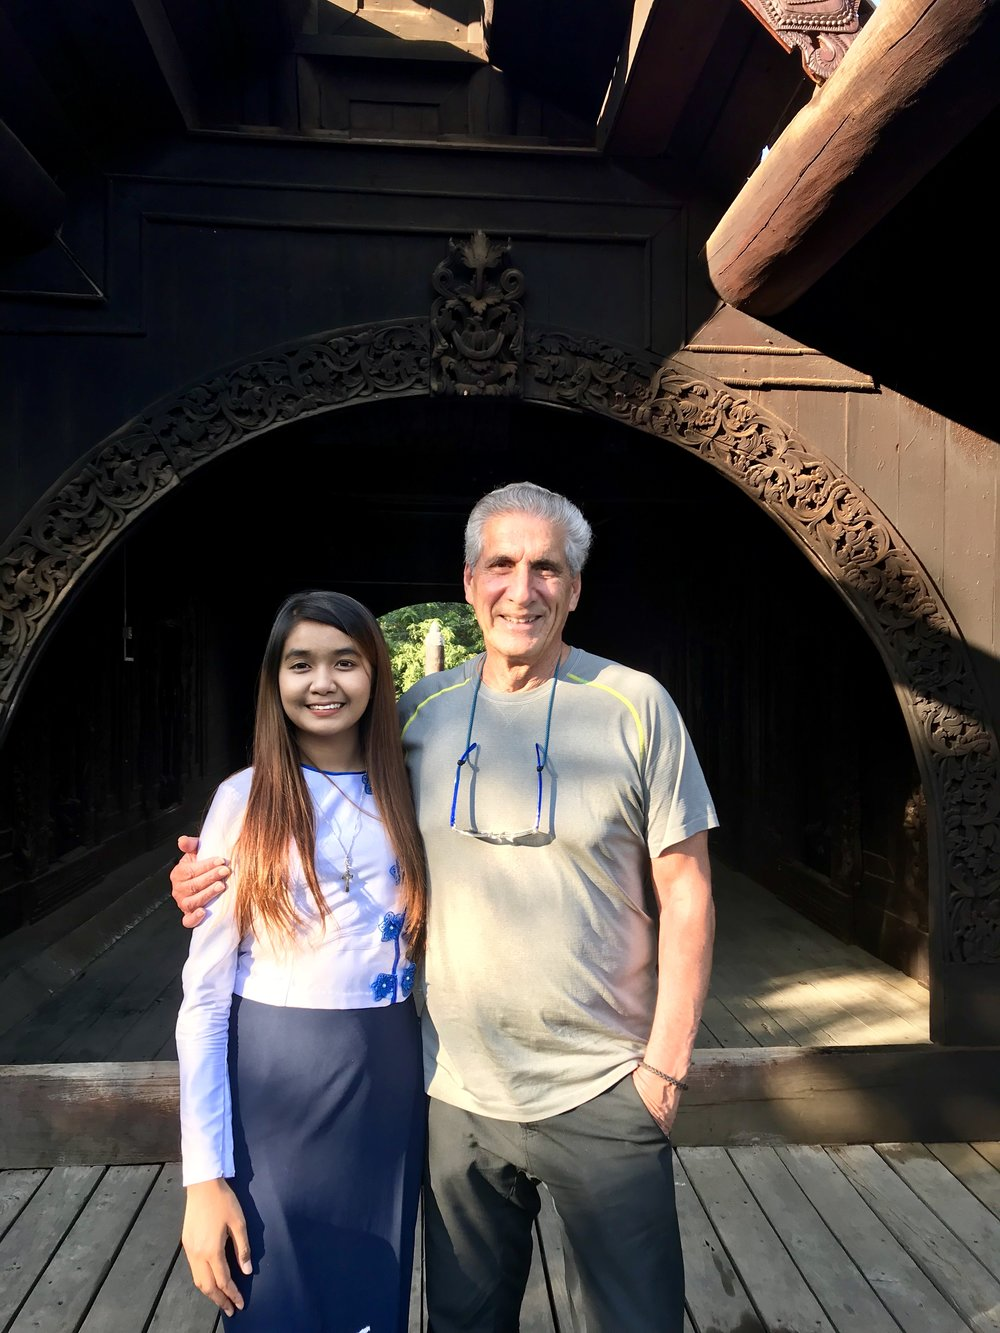 Michelle & Me in front of archway of wood pagoda.jpg*.jpg